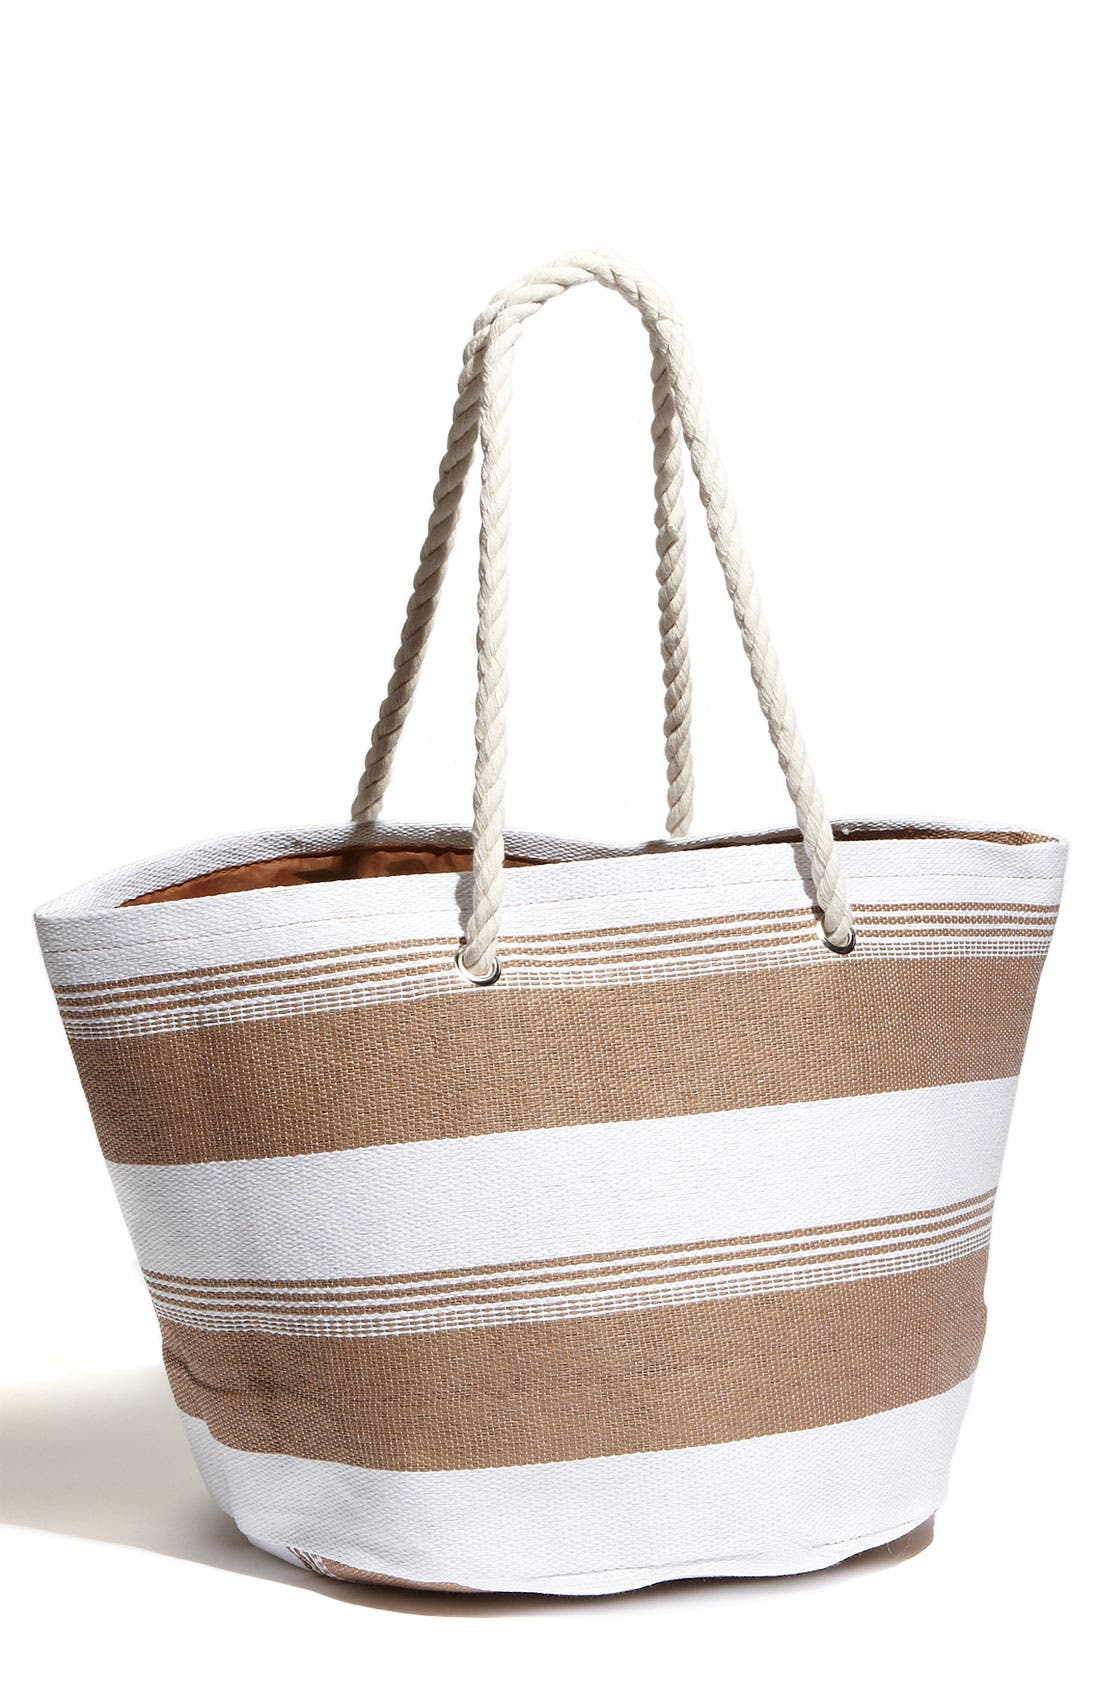 Alternate Image 1 Selected - Cesca Rope Handle Woven Stripe Tote